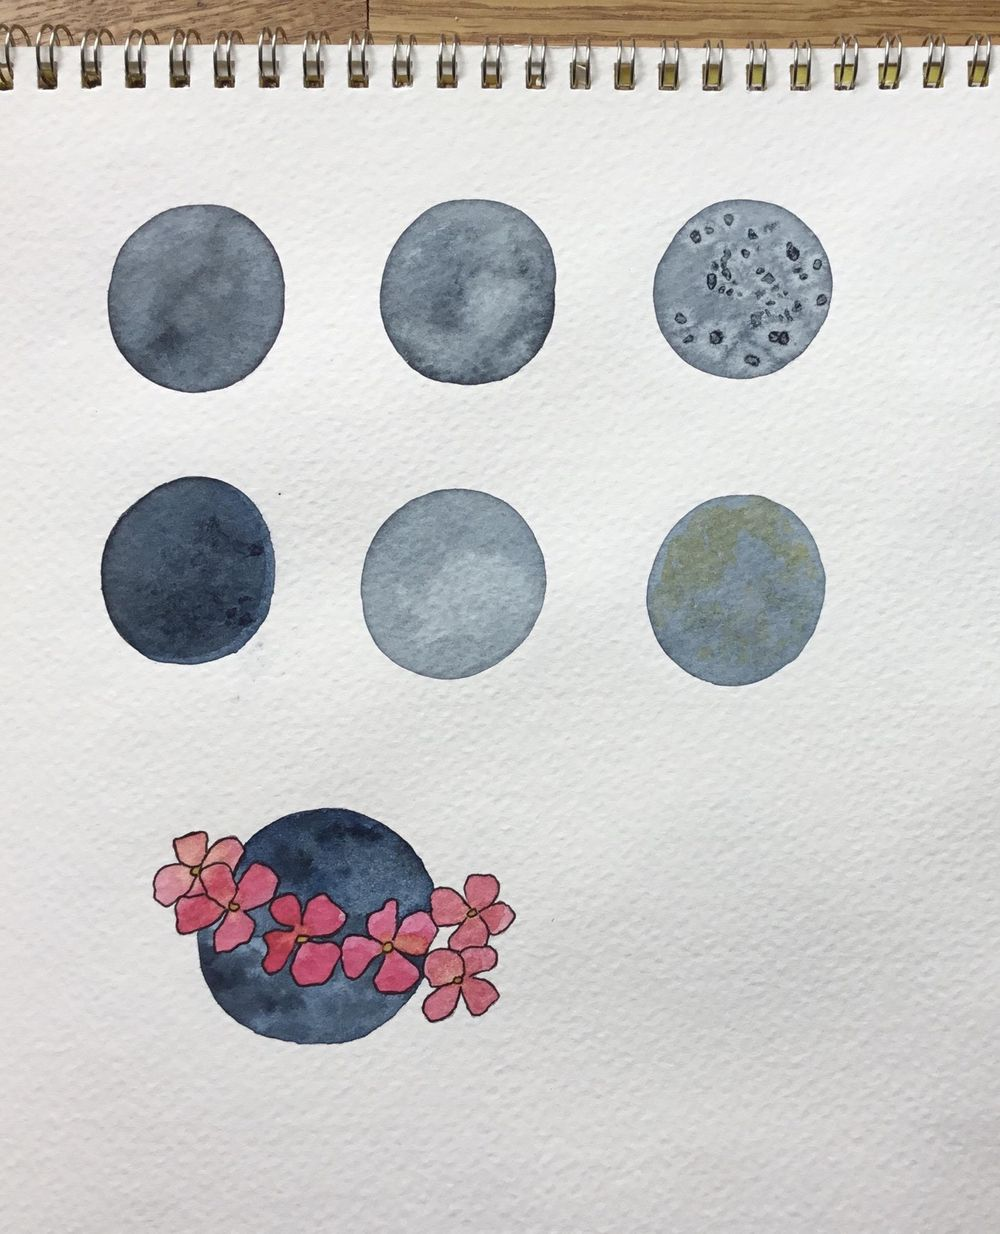 Moons - image 1 - student project